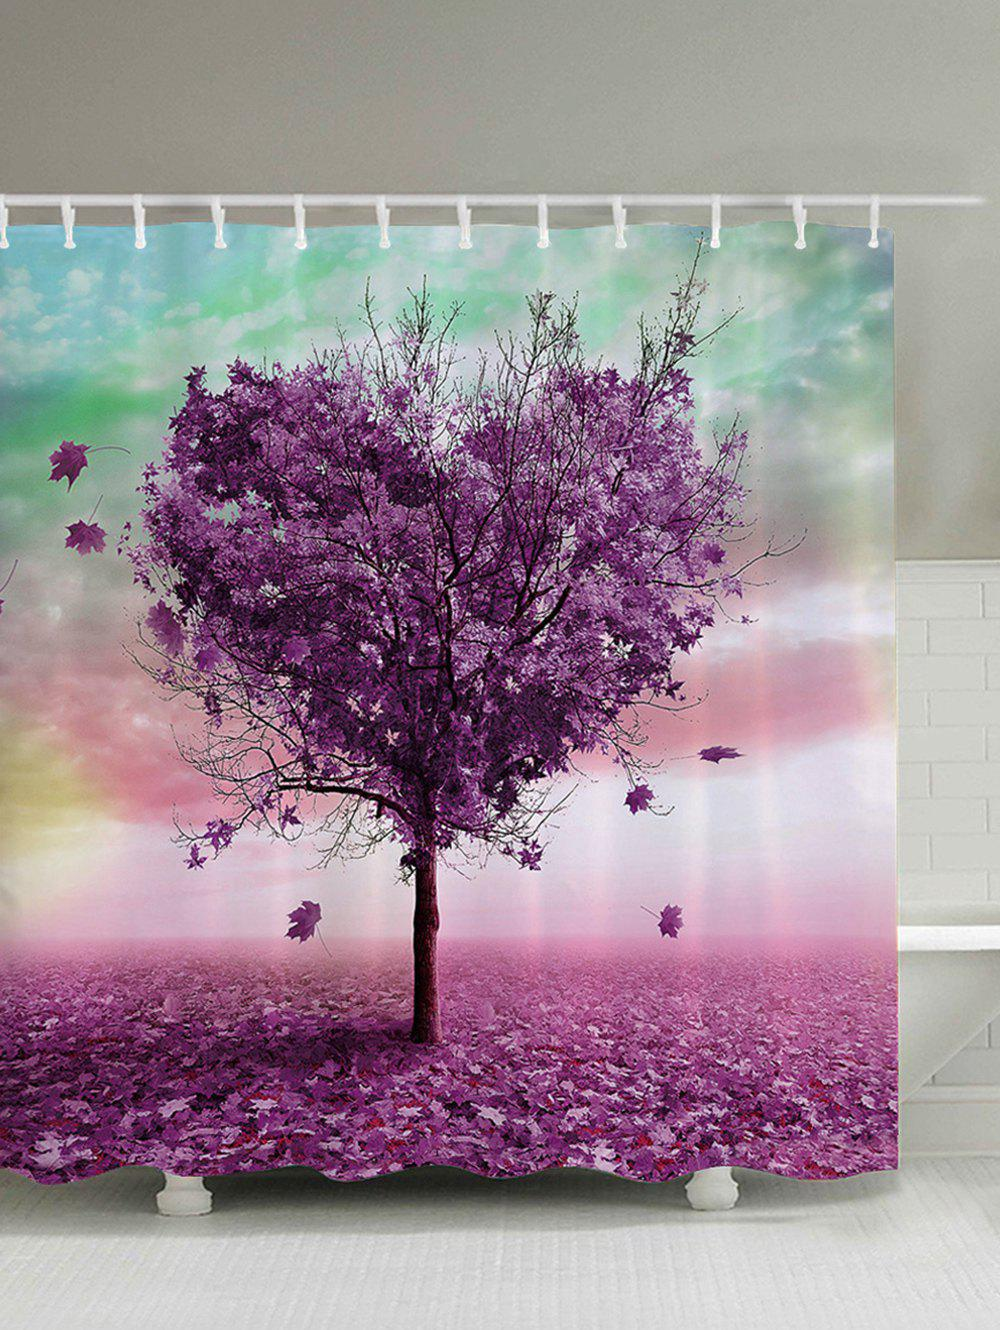 Heart Shaped Tree Waterproof Fabric Bath Curtain - VIOLET 150*180CM